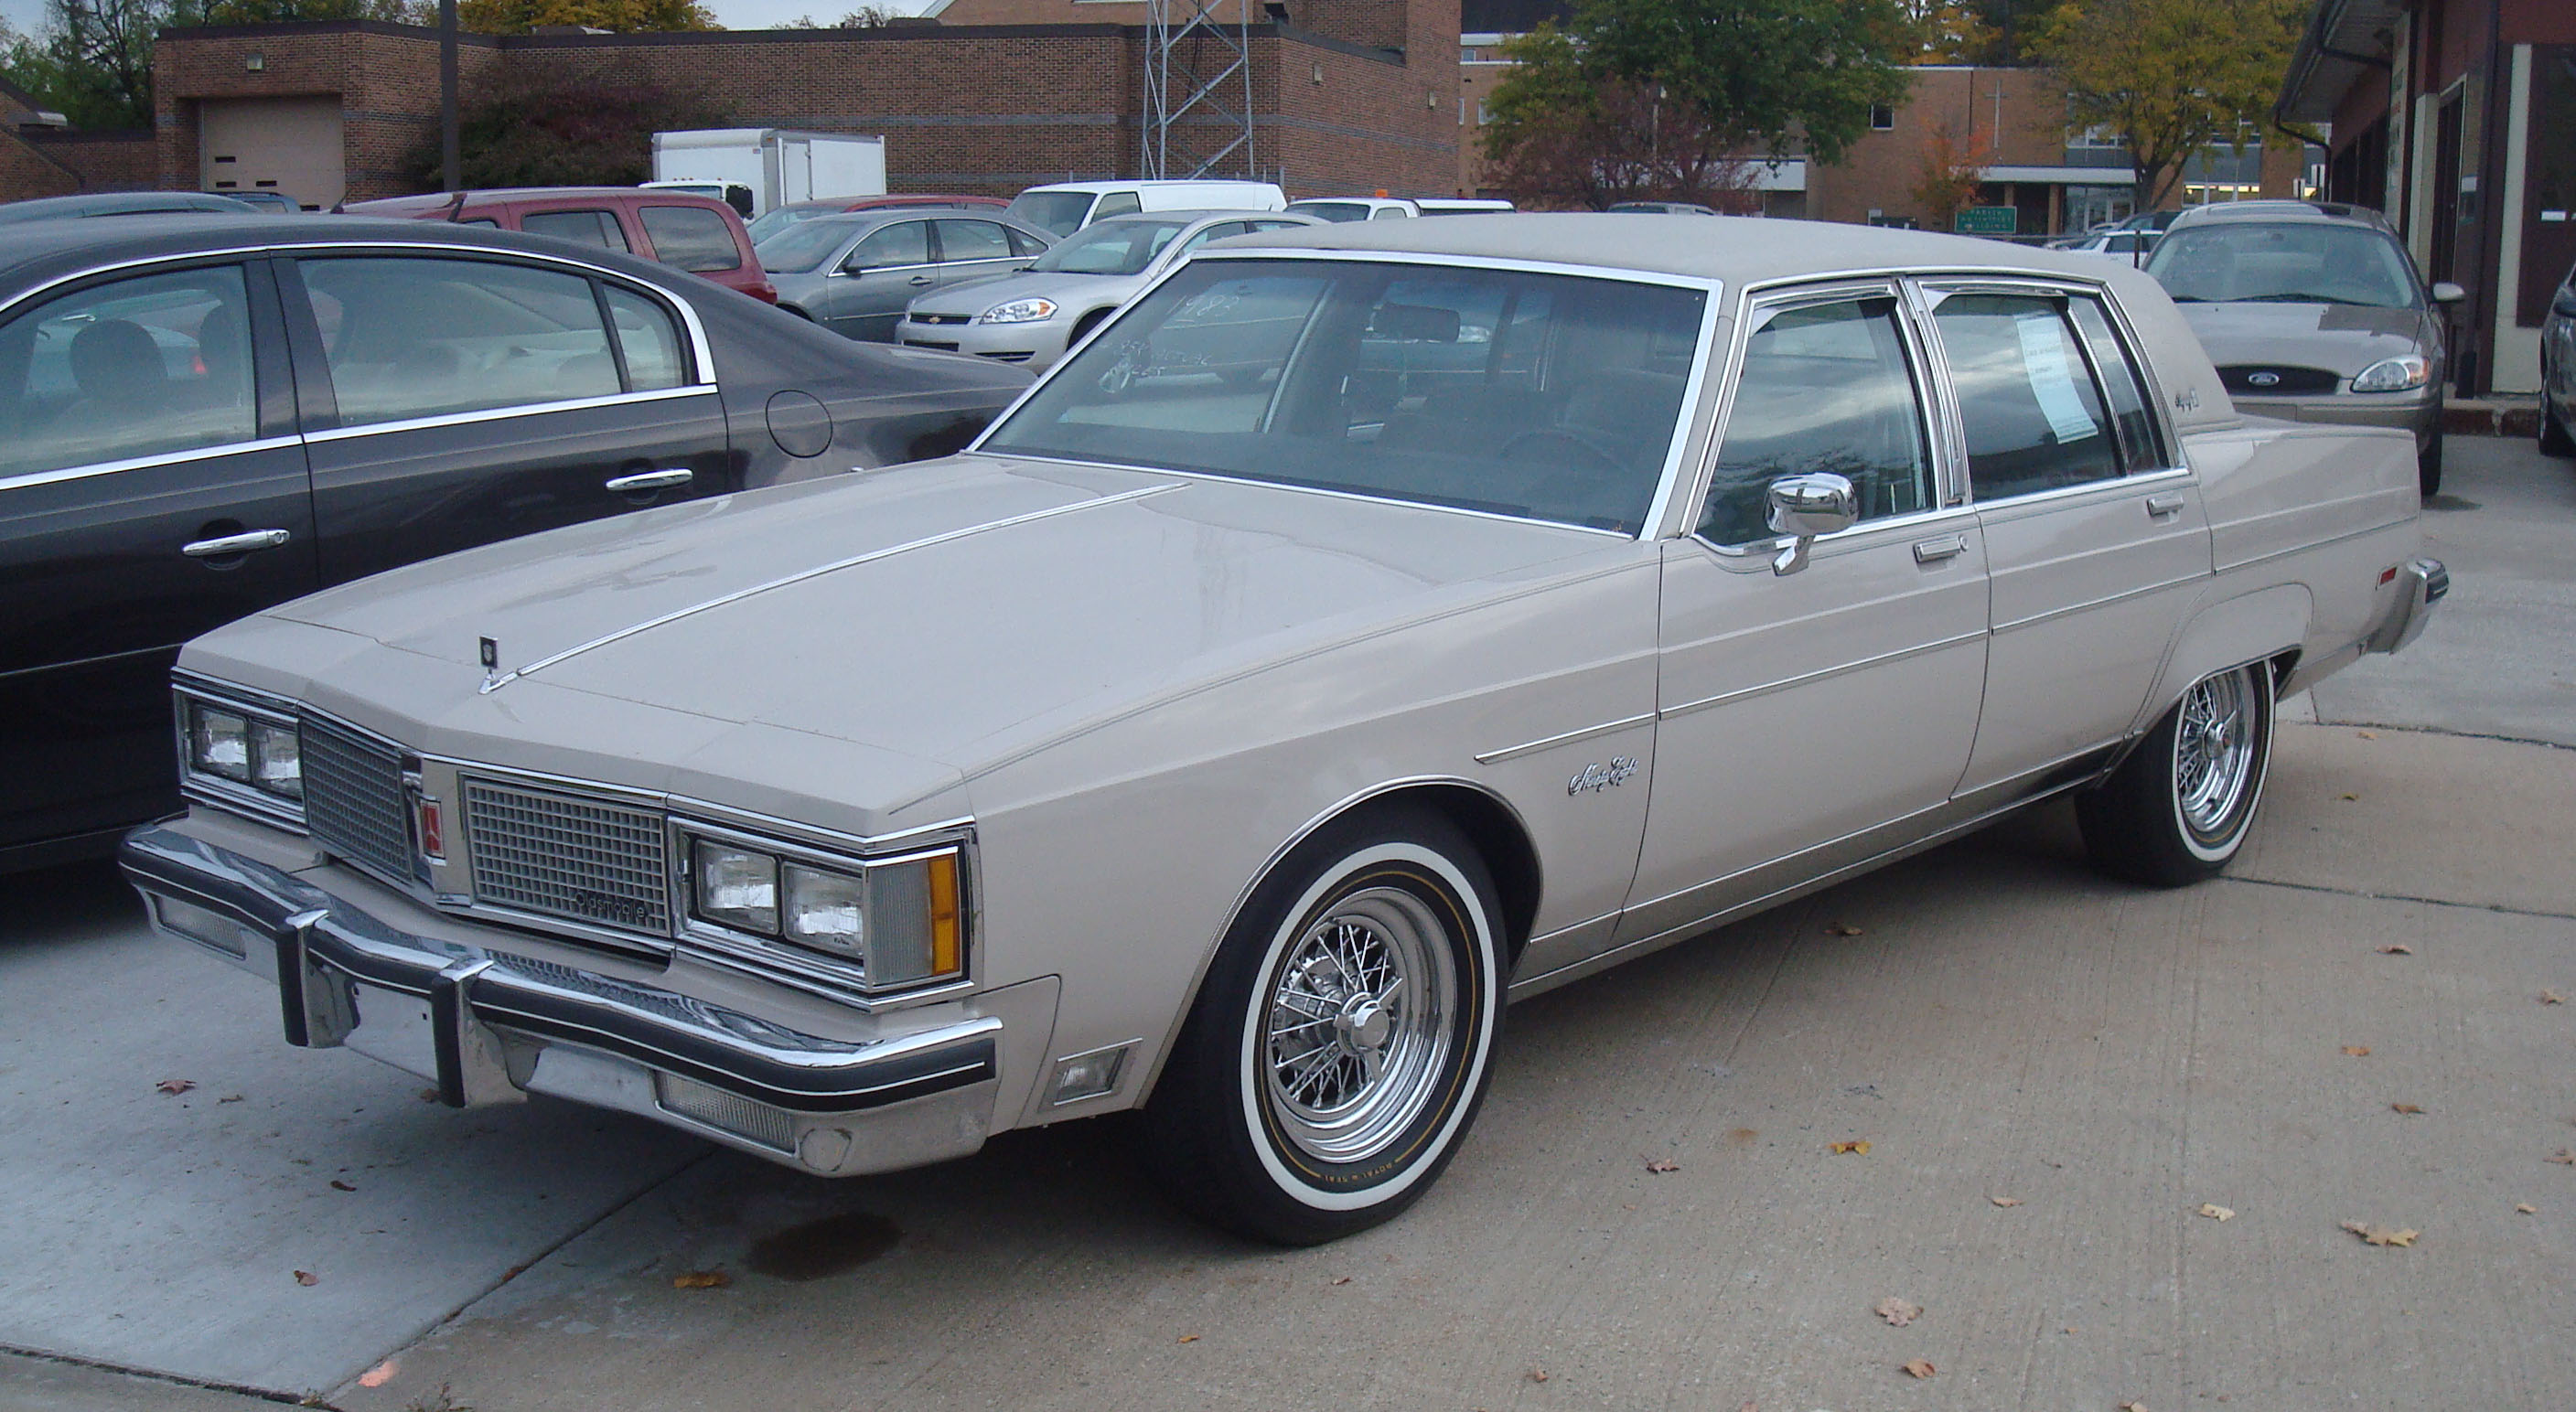 Fichier:1983 Oldsmobile Ninety-Eight (cropped version).jpg ...